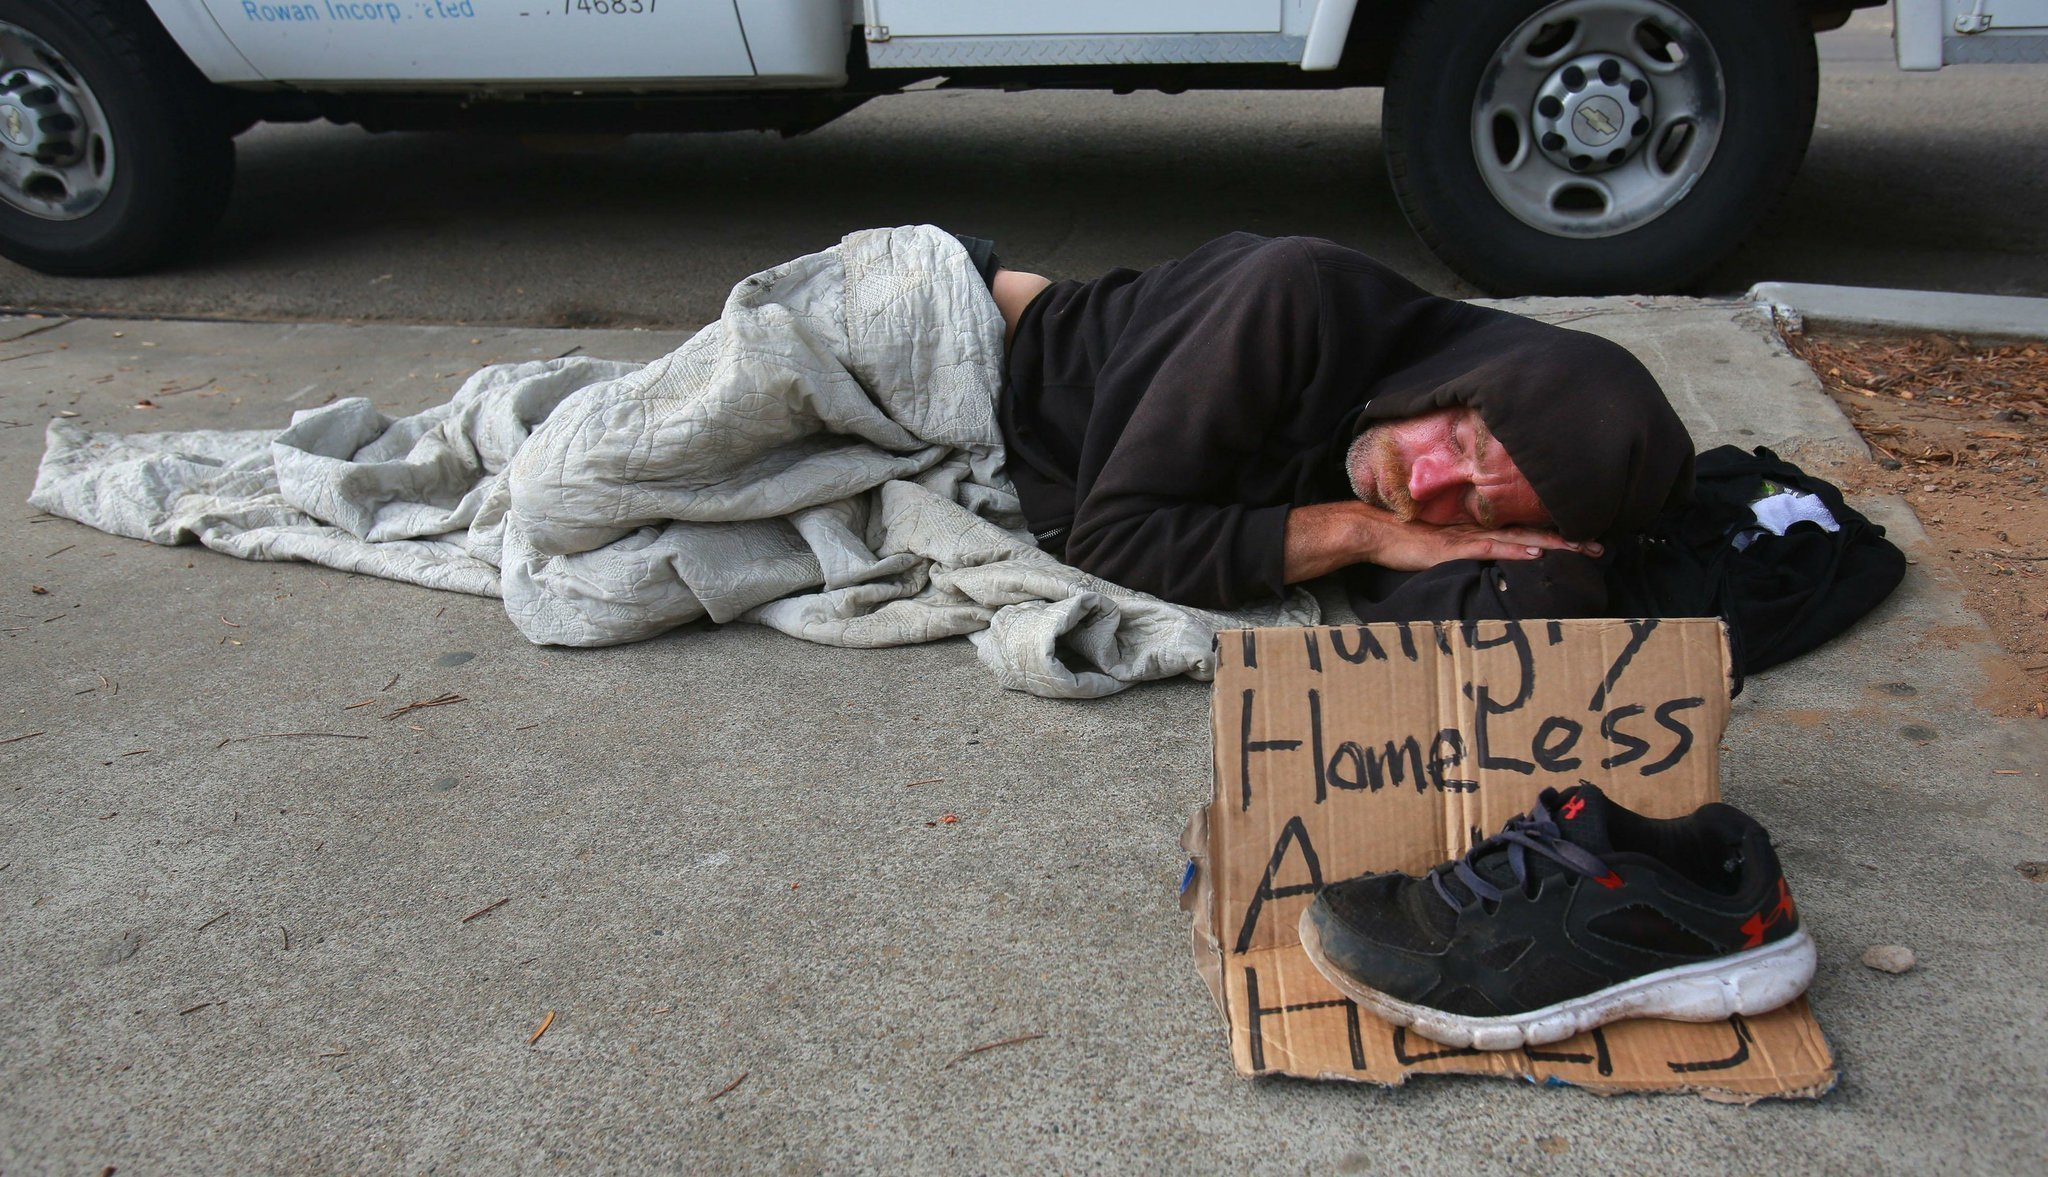 homeless essay bedford reader Related post of homeless essay conclusion essay cause of homelessness atvmudnationals com how to write good ideas for and essay on homelessness jpg at com bad.